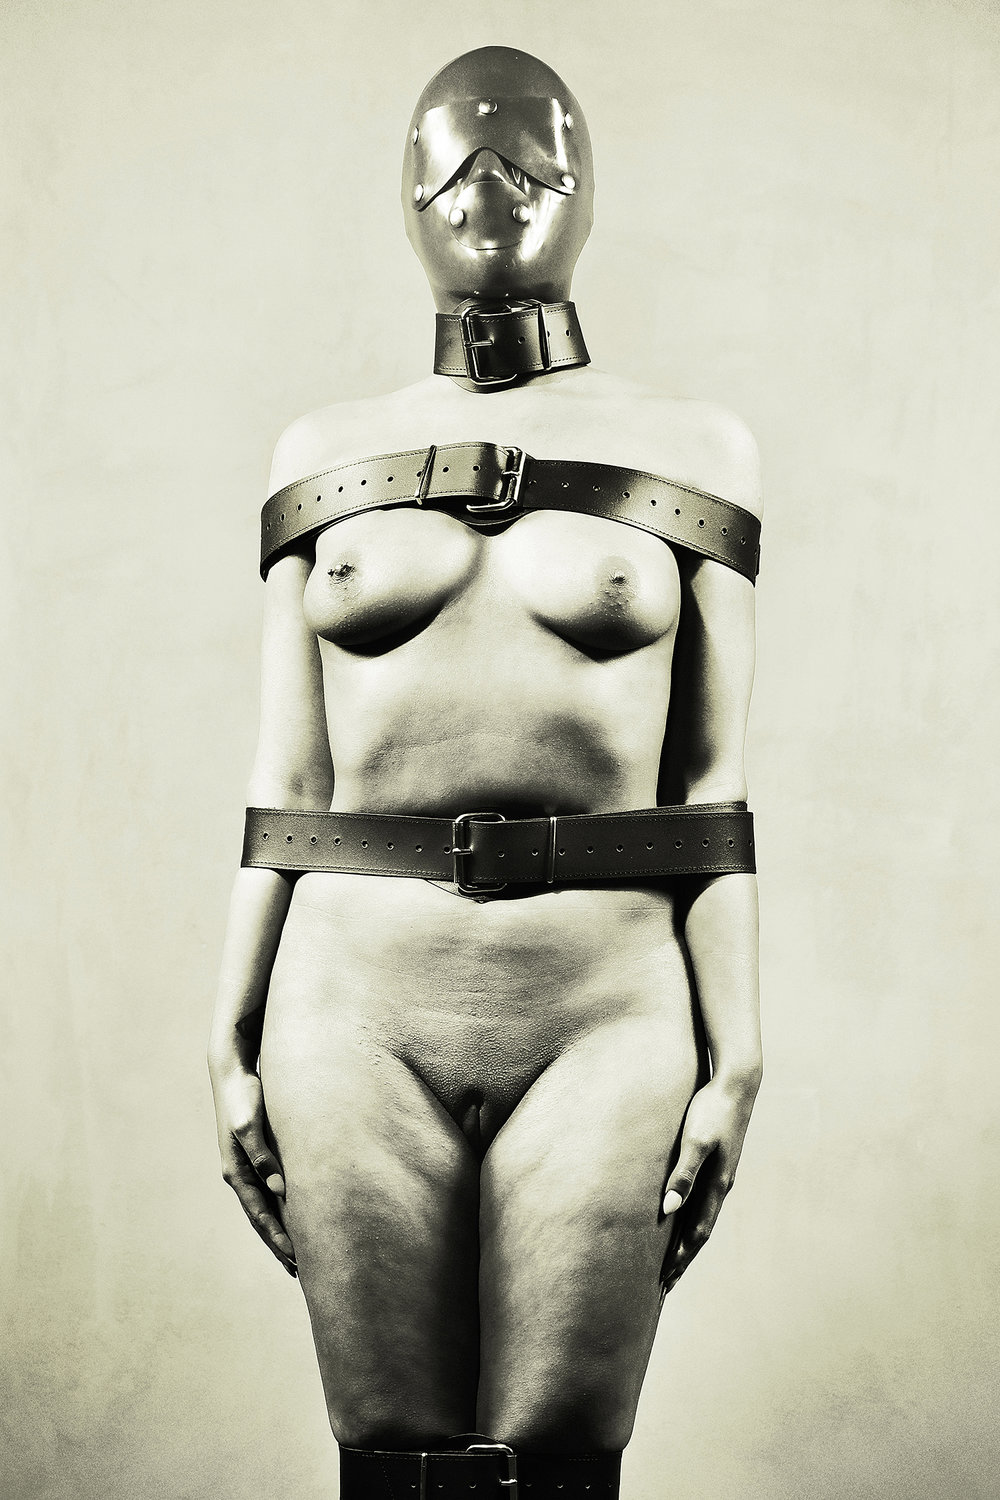 Silent-Nude Woman in Bdsm Fetish Style . Photographer: ©William Langeveld – Netherlands